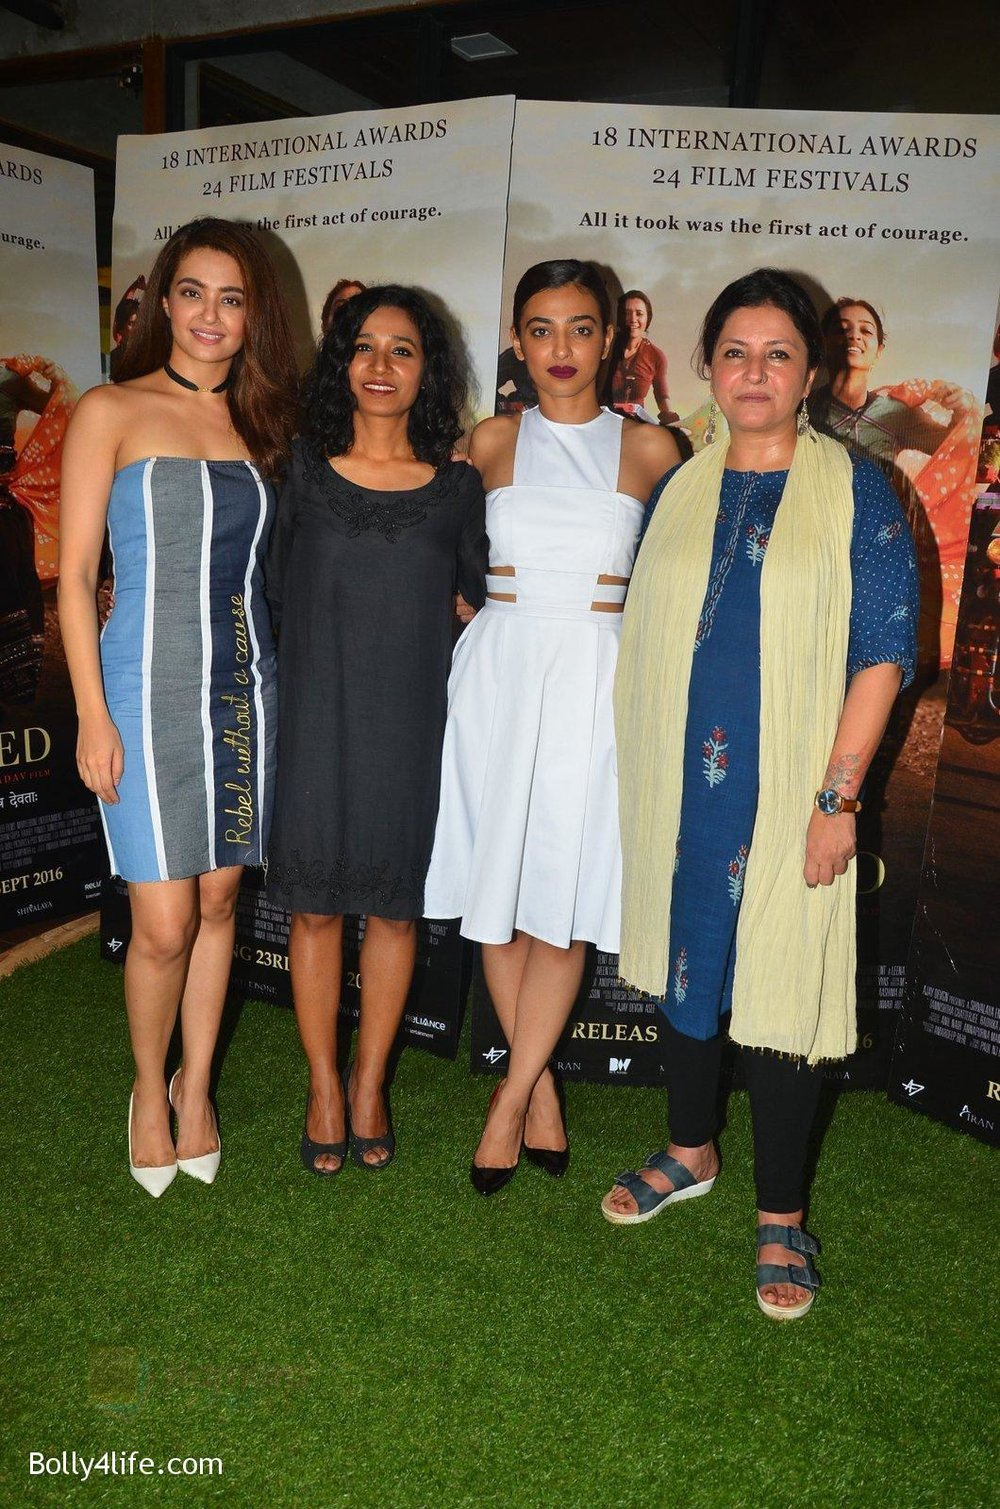 Surveen-Chawla-Tannishtha-Chatterjee-Radhika-Apte-Leena-Yadav-at-Parched-Photoshoot-on-17th-Sept-2016-27.jpg